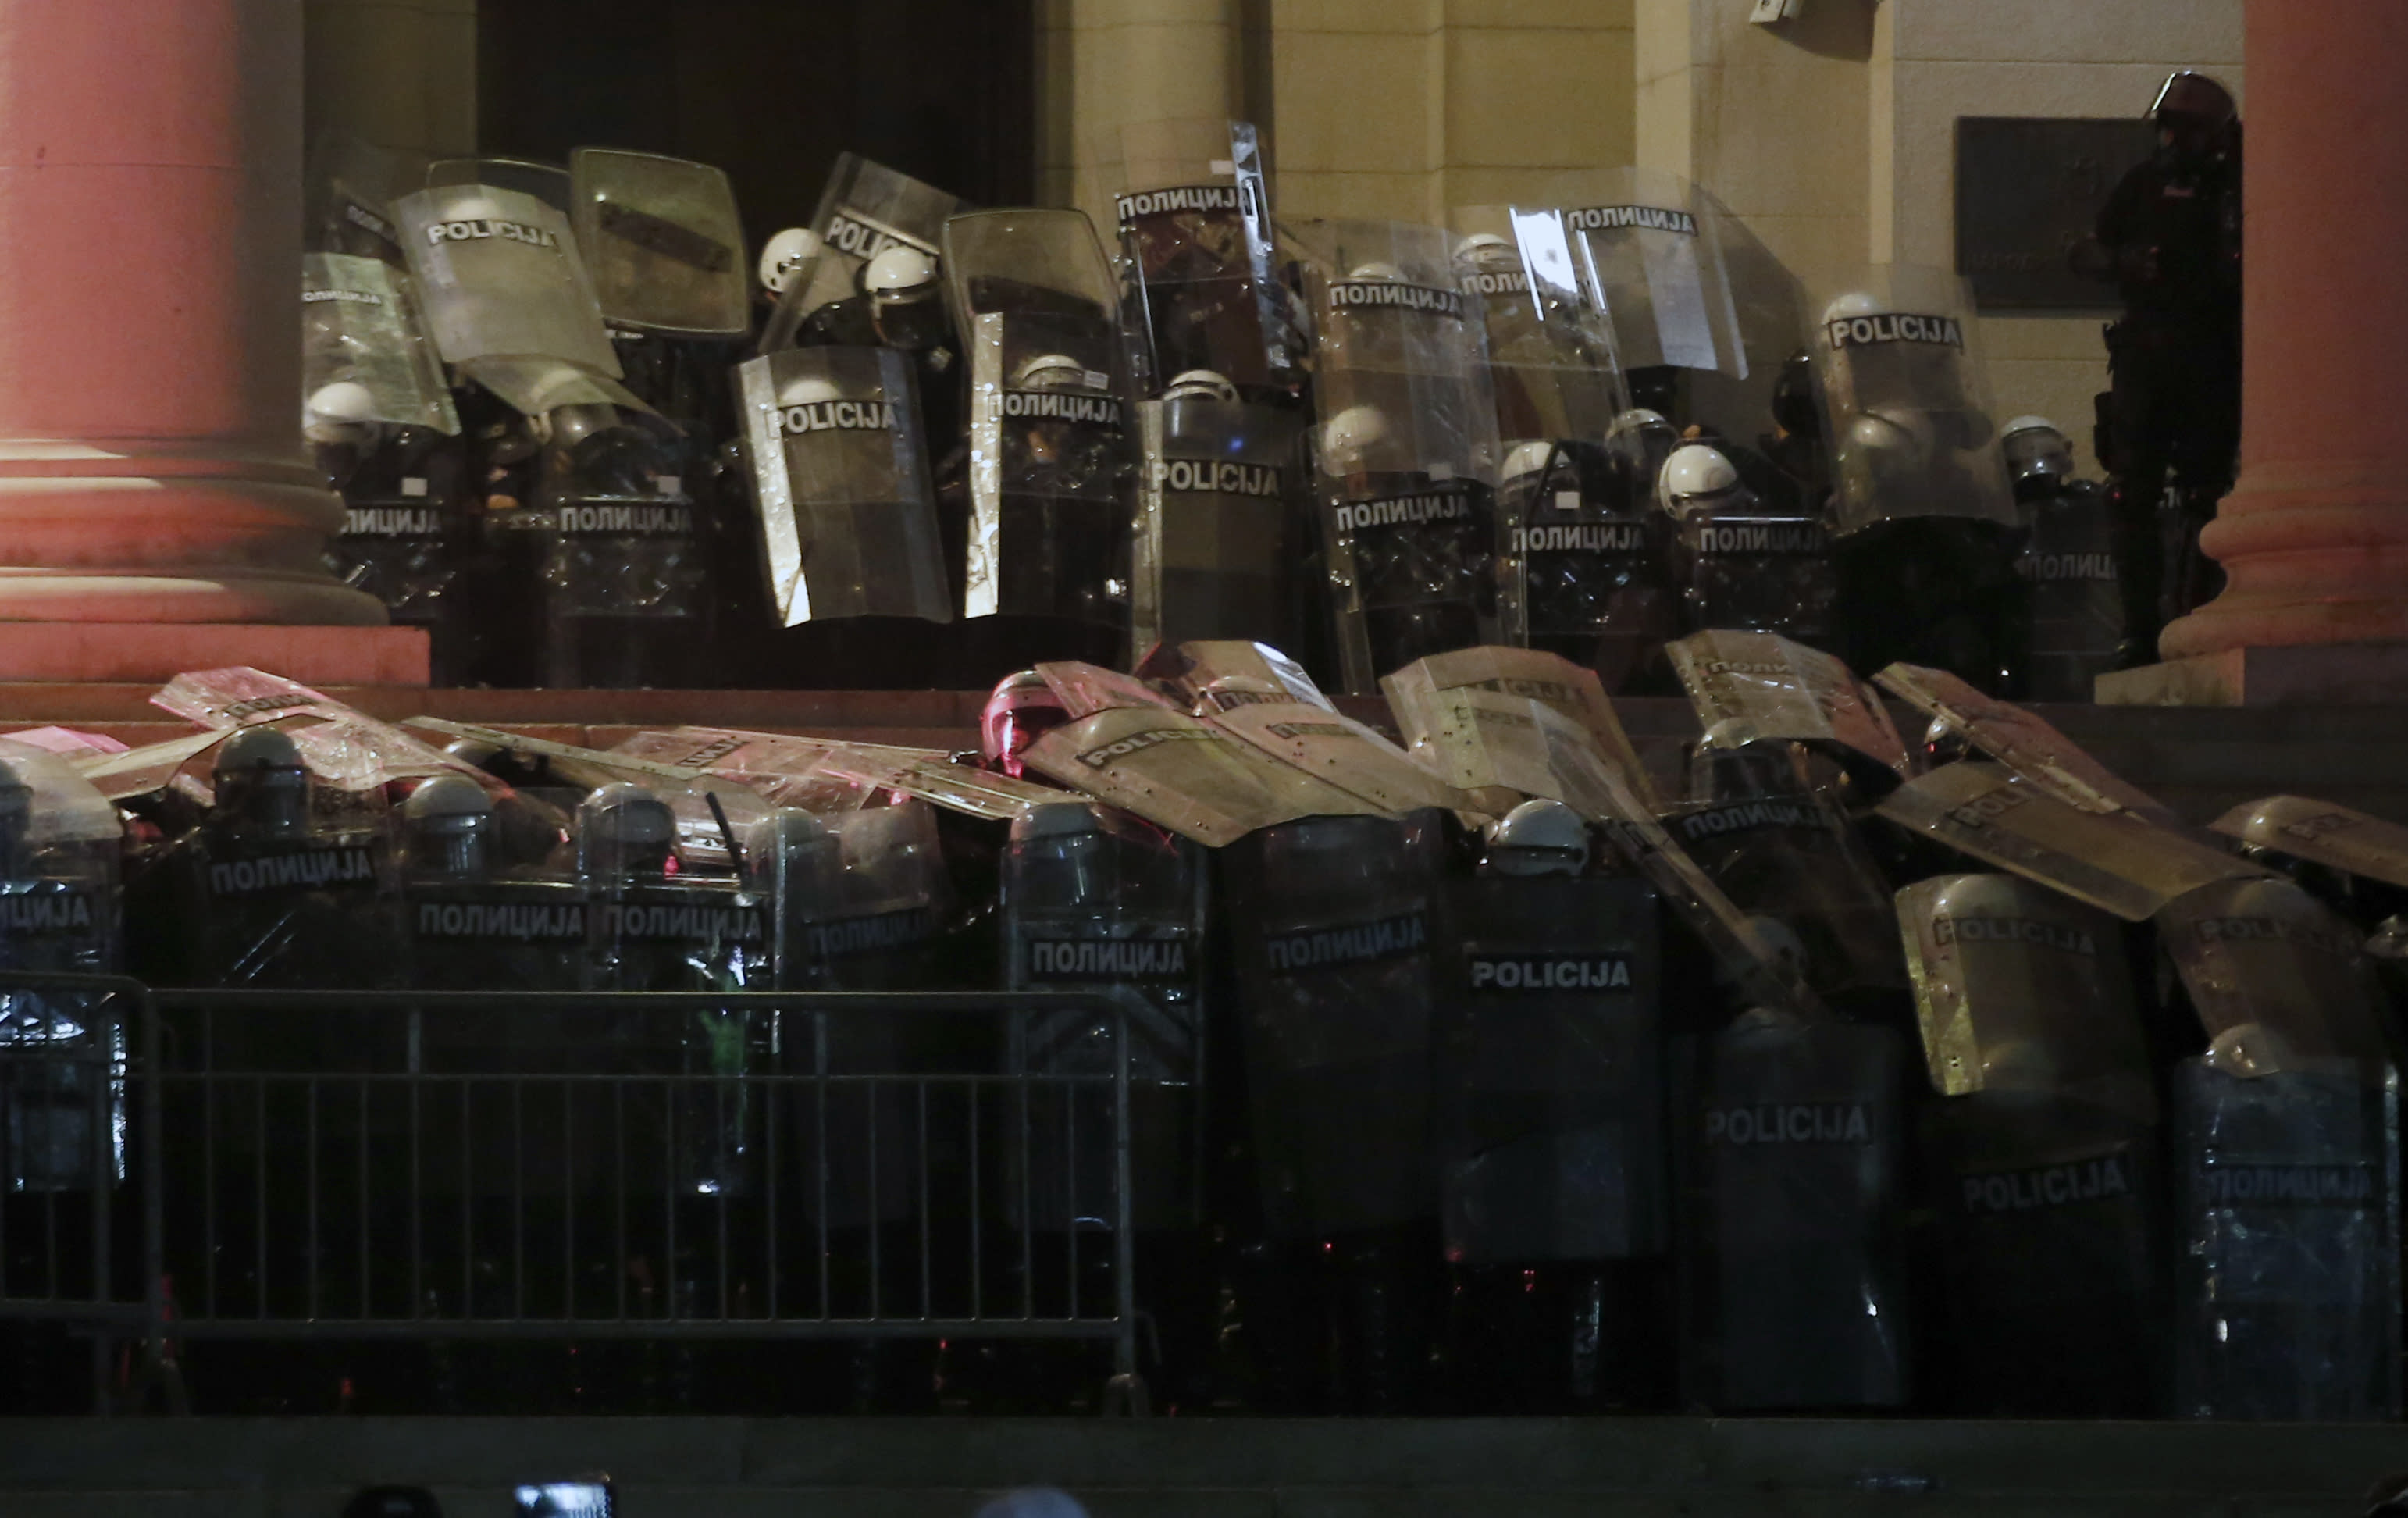 Serbian riot police guard the Serbian parliament building during a protest in Belgrade, Serbia, Friday, July 10 2020. Hundreds of demonstrators tried to storm Serbia's parliament on Friday, clashing with police who fired tear gas during the fourth night of protests against the president's increasingly authoritarian rule. The protests started on Tuesday when President Aleksandar Vucic announced that Belgrade would be placed under a new three-day lockdown following a second wave of confirmed coronavirus infections. (AP Photo/Darko Vojinovic)